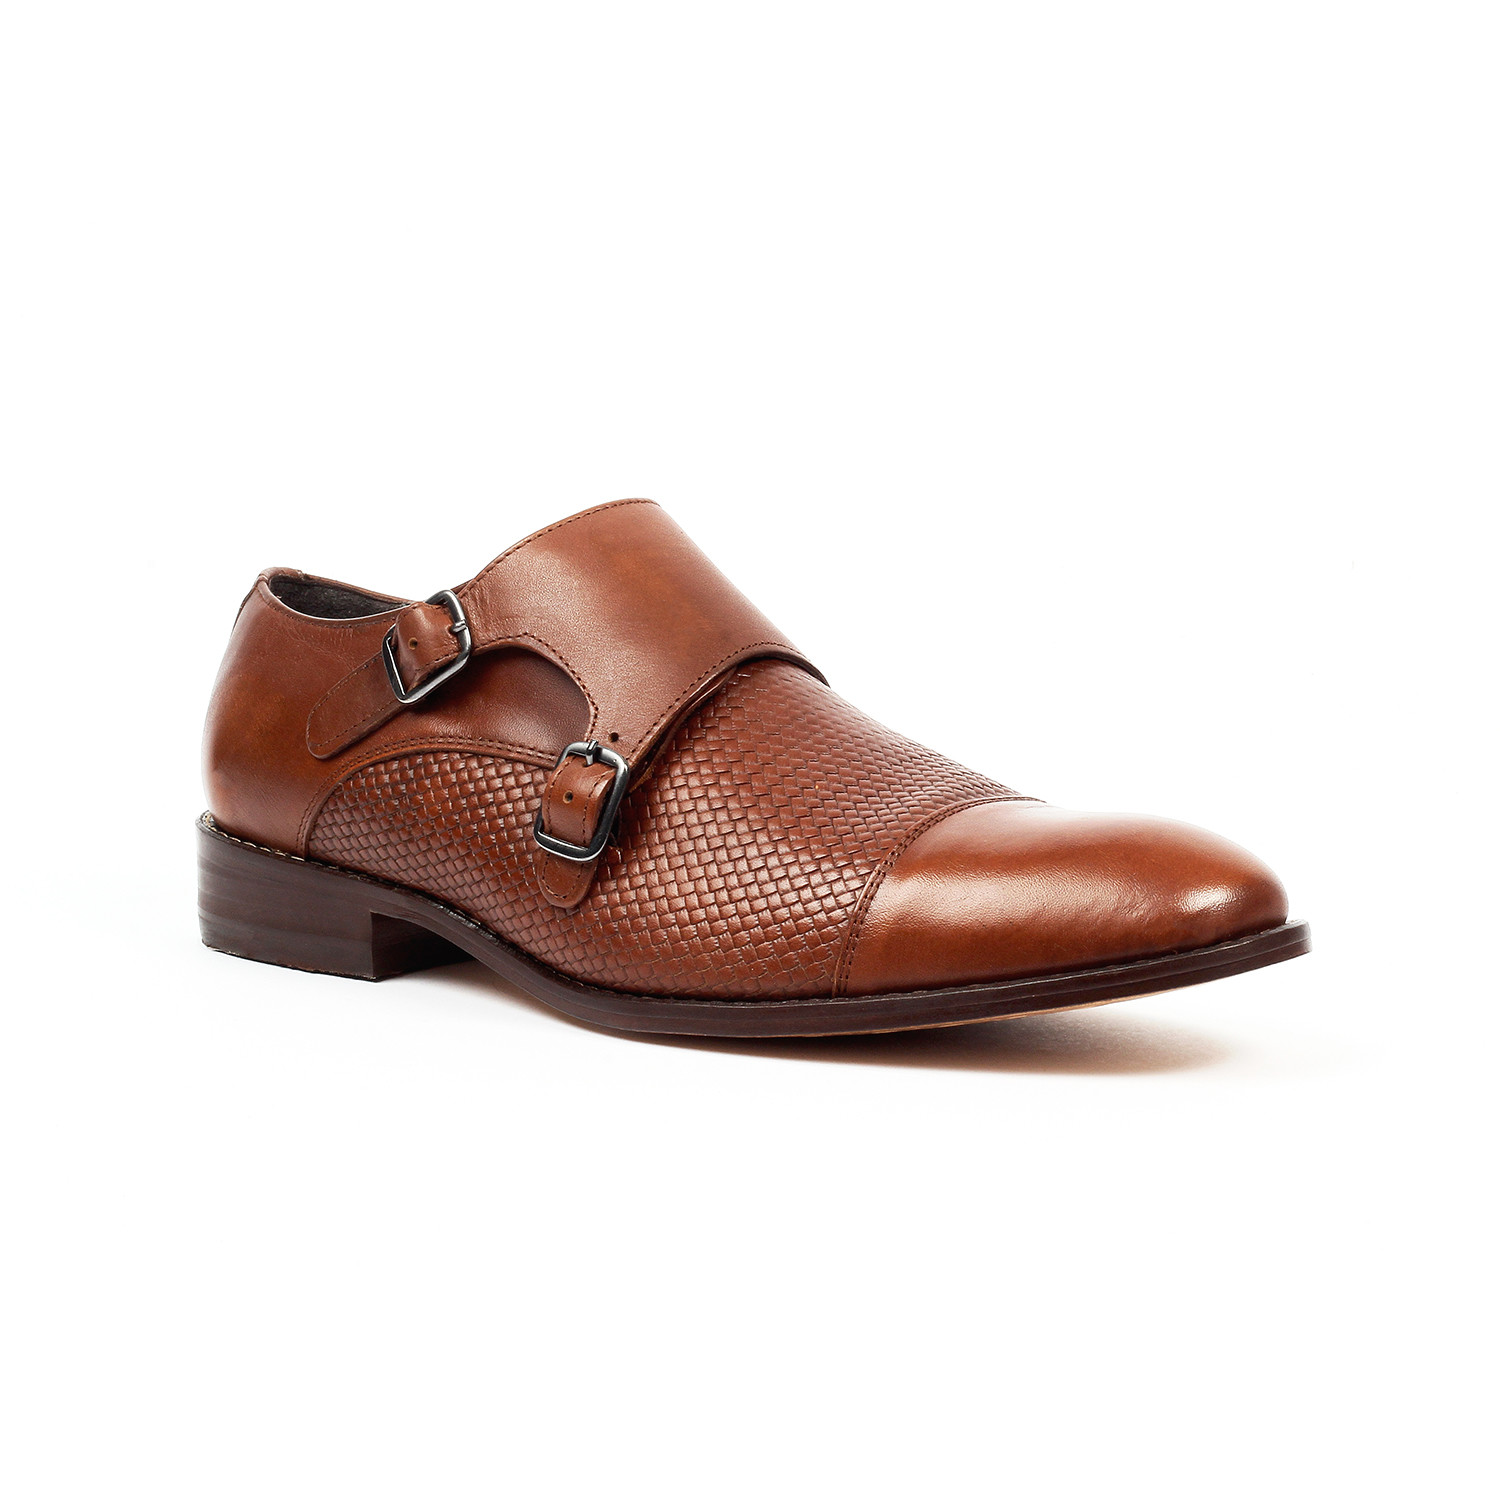 Jack's Andre // Monk Strap Shoes // Tan (US: 7.5